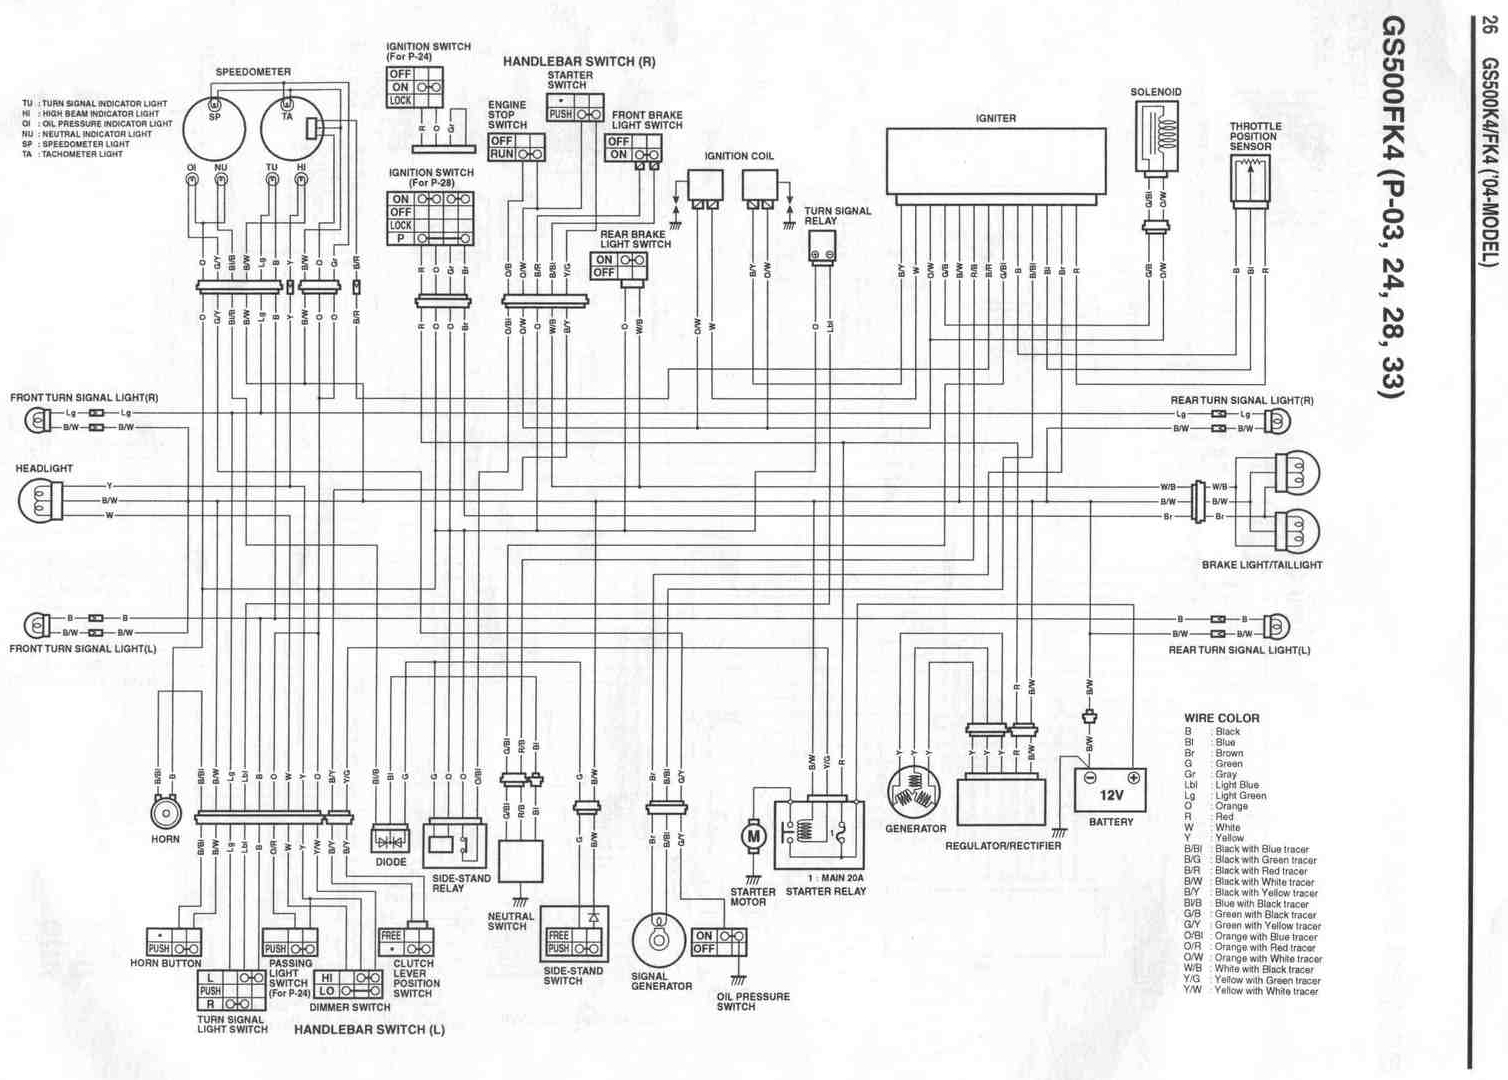 Suzuki_WiringDiagram_04 wire diagram gs500f 06 Wiring Harness Replacement Hazard at bakdesigns.co